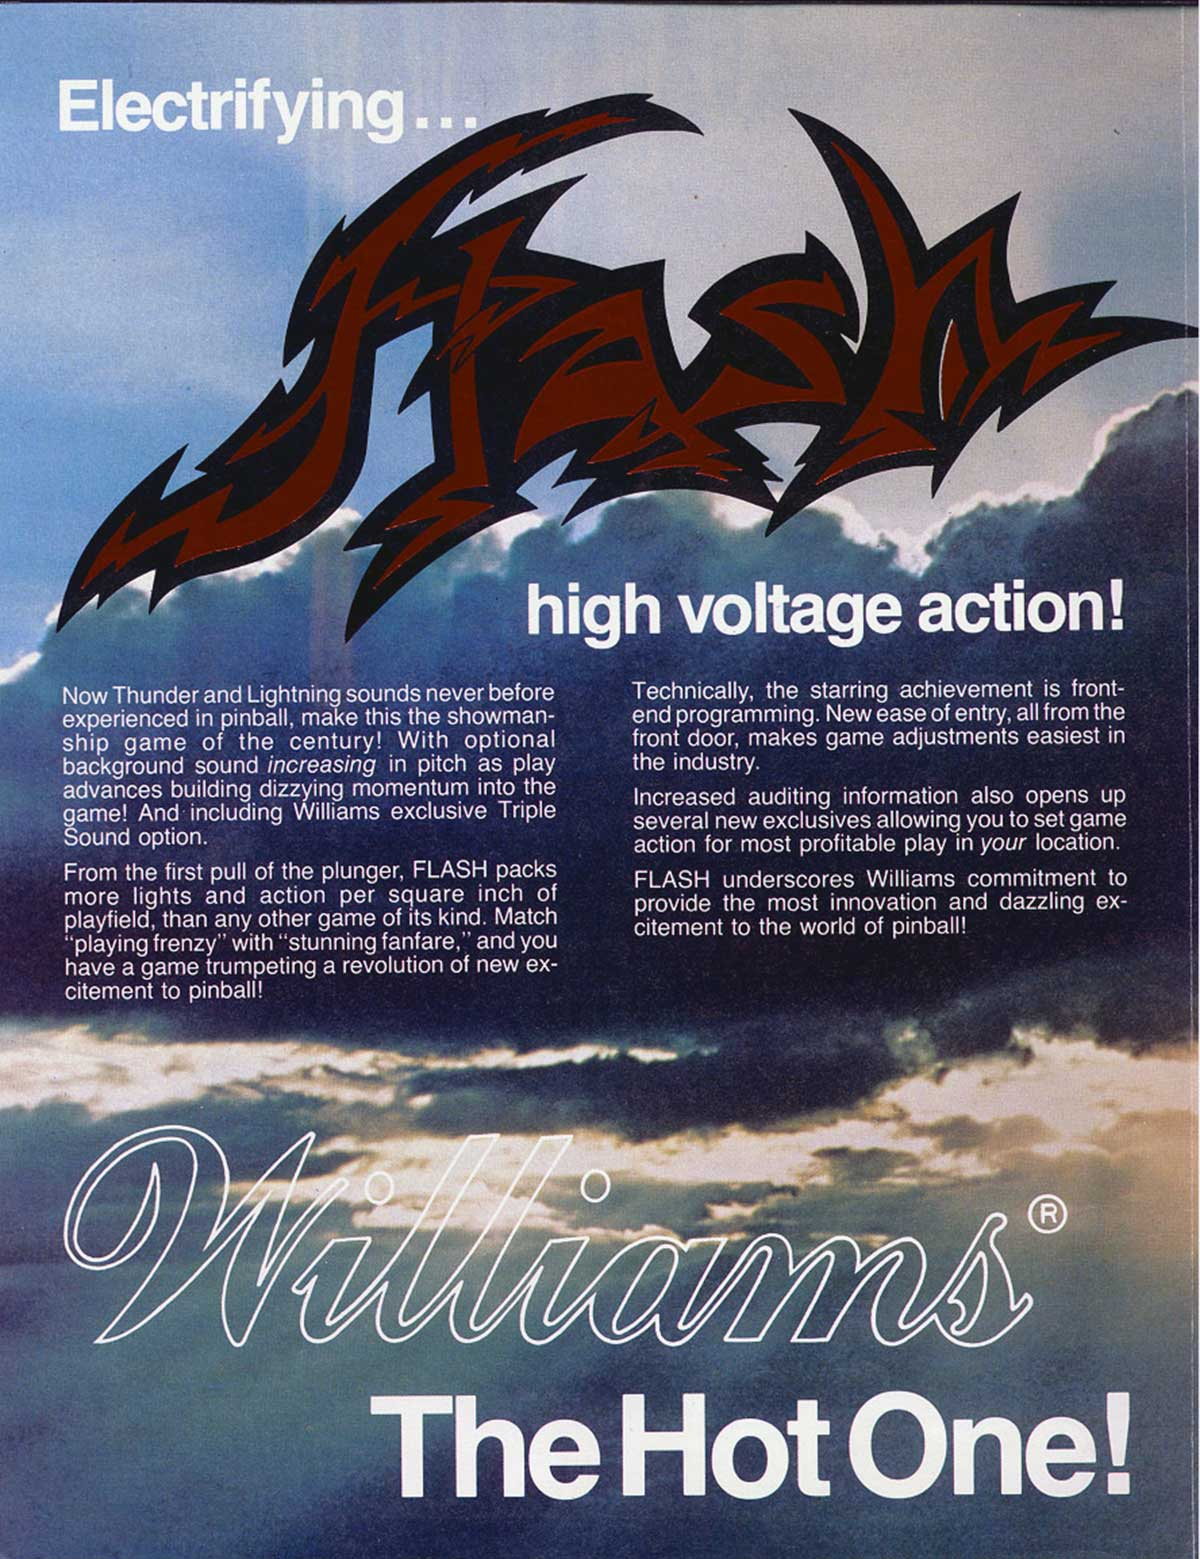 Flash_flyer2.jpg